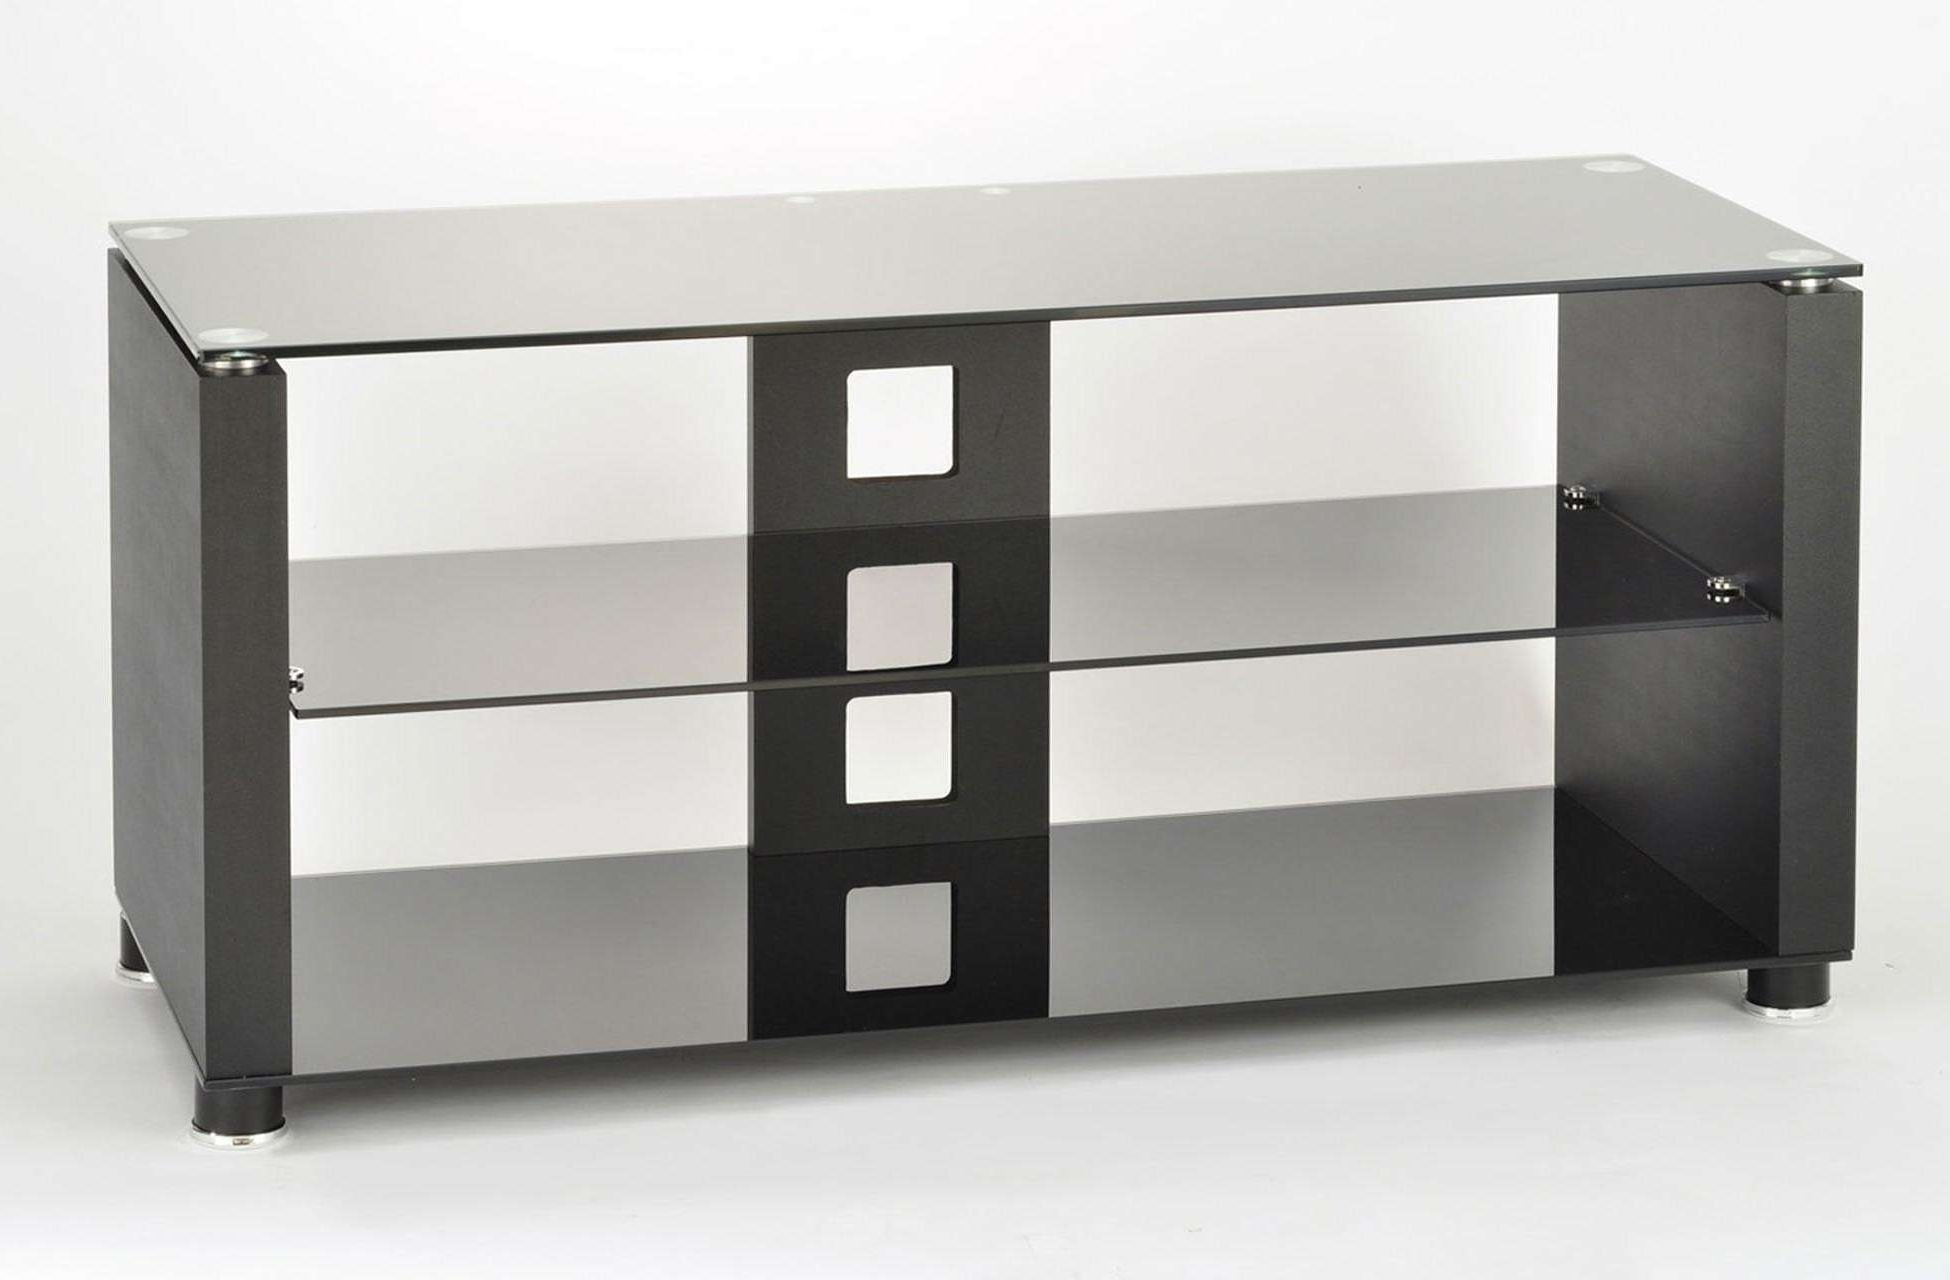 Richer Sounds Tv Stand Intended For Well Known Richer Sounds Tv Stands Ideas 1950×1280 Attachment (View 12 of 20)